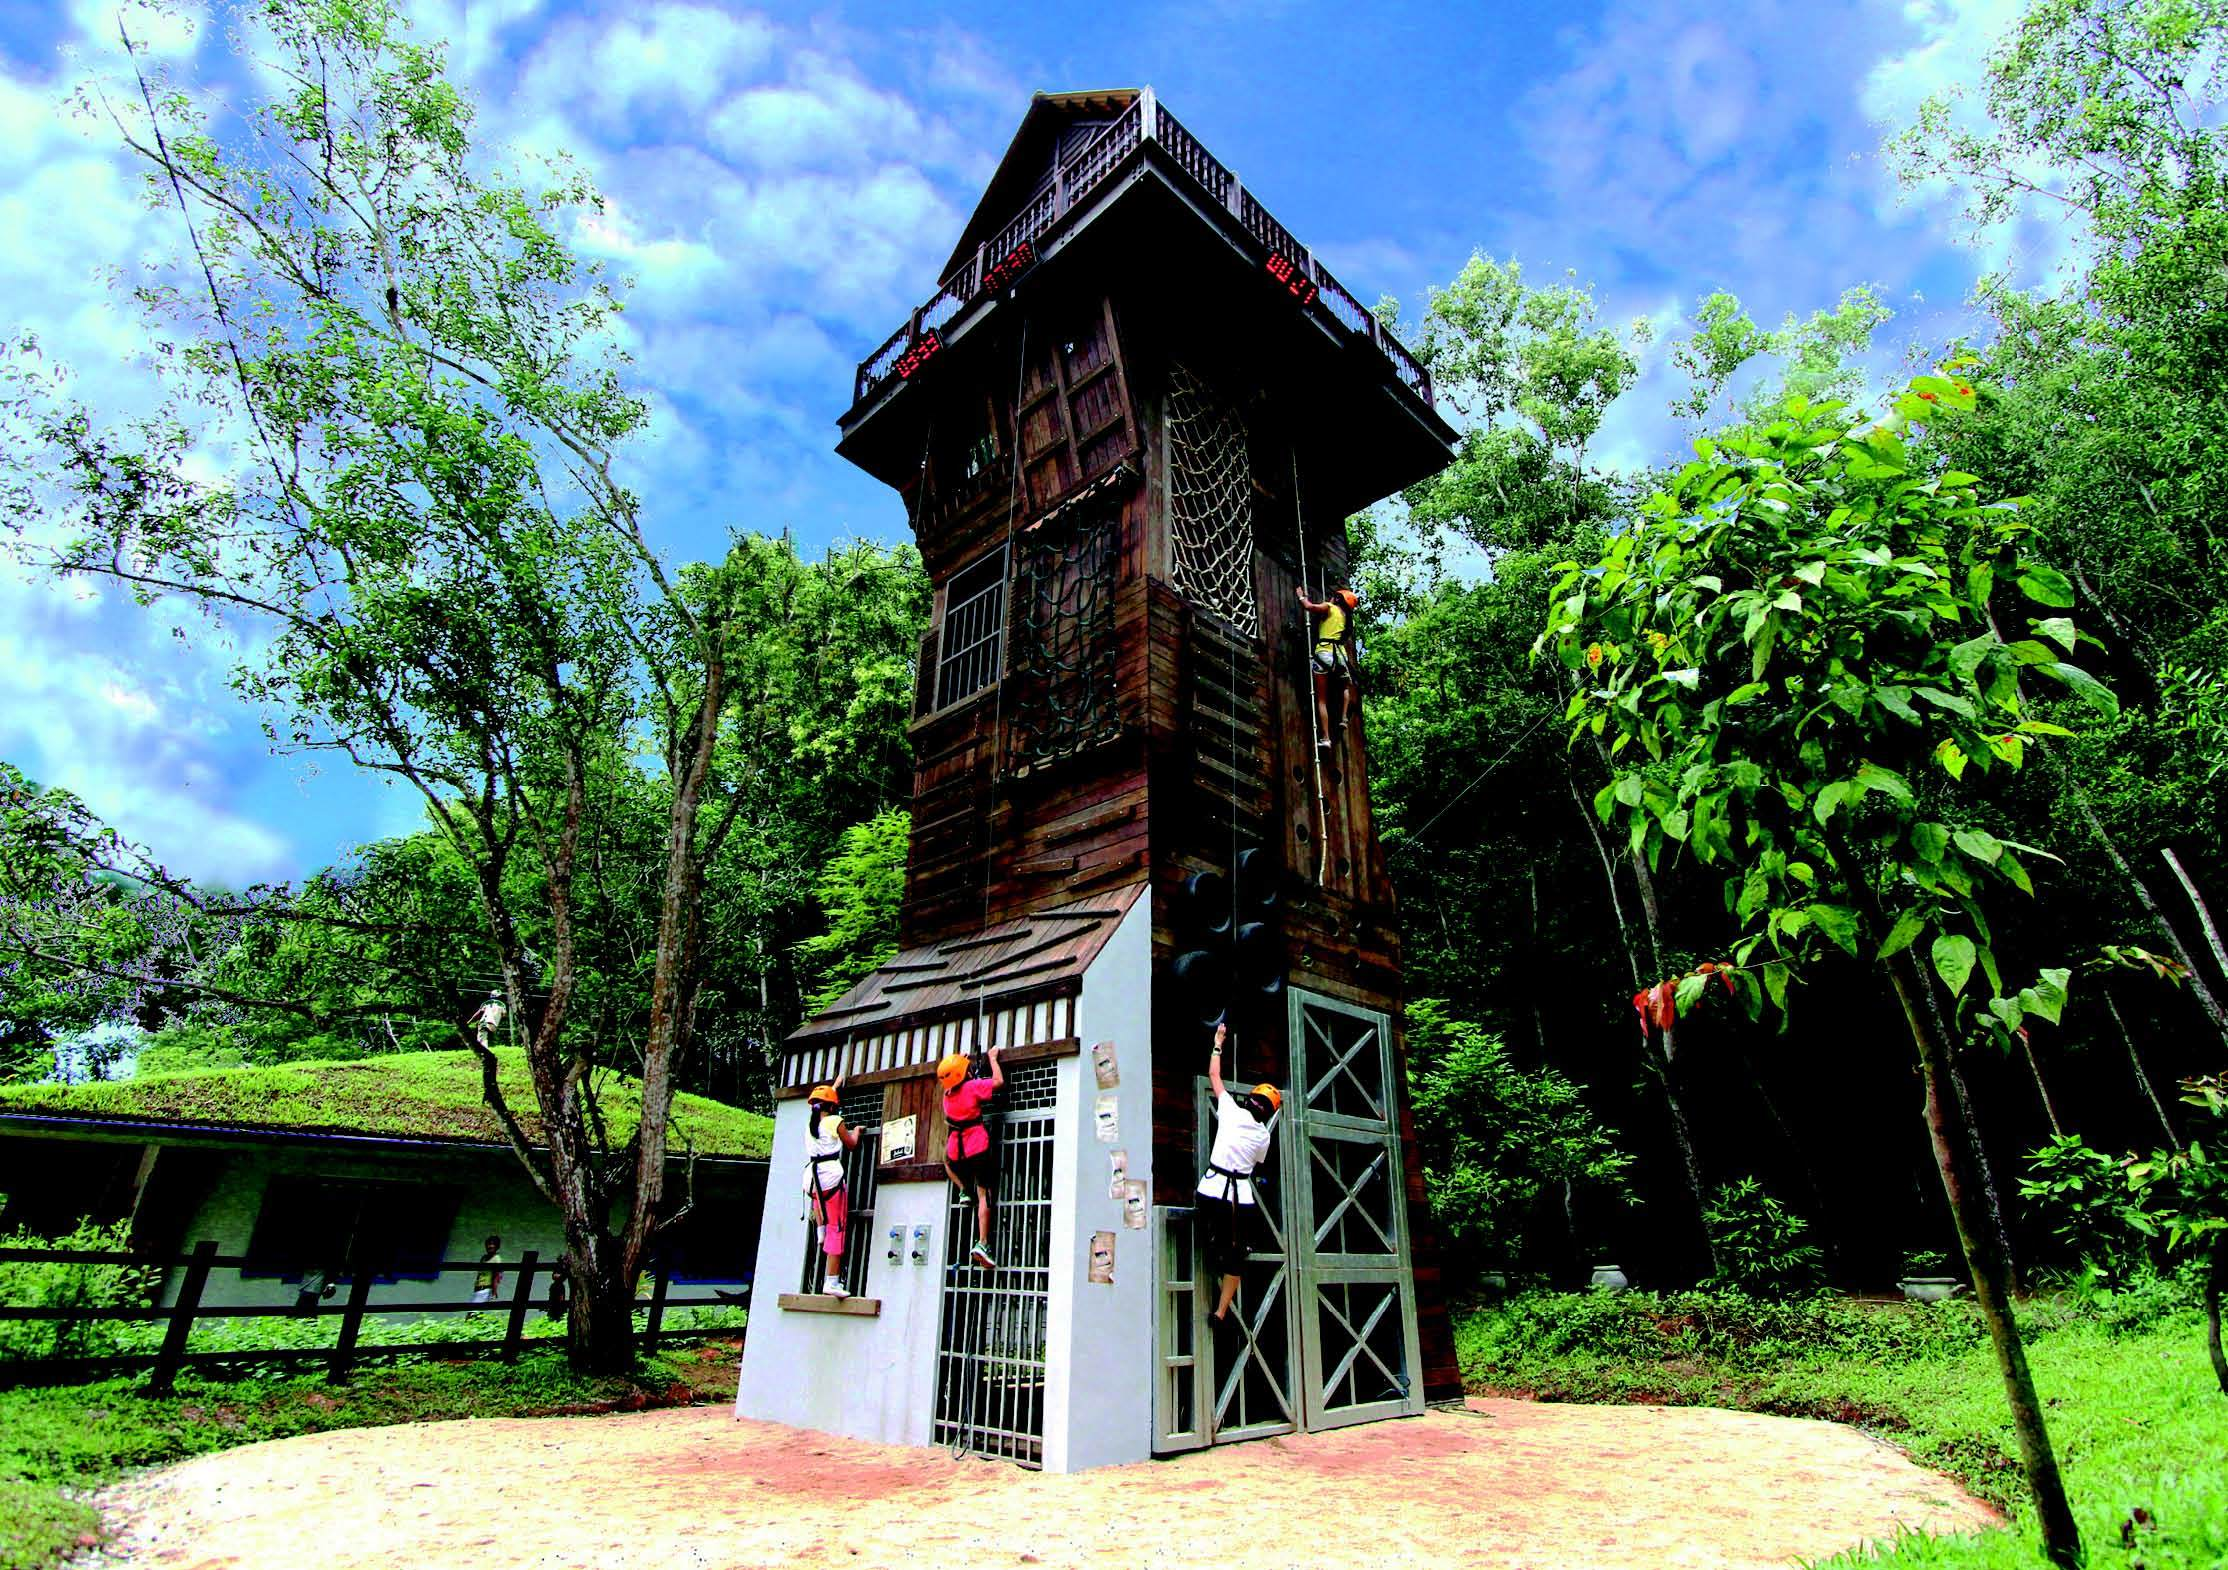 Best for teens 16 and below: Escape Adventureplay Penang